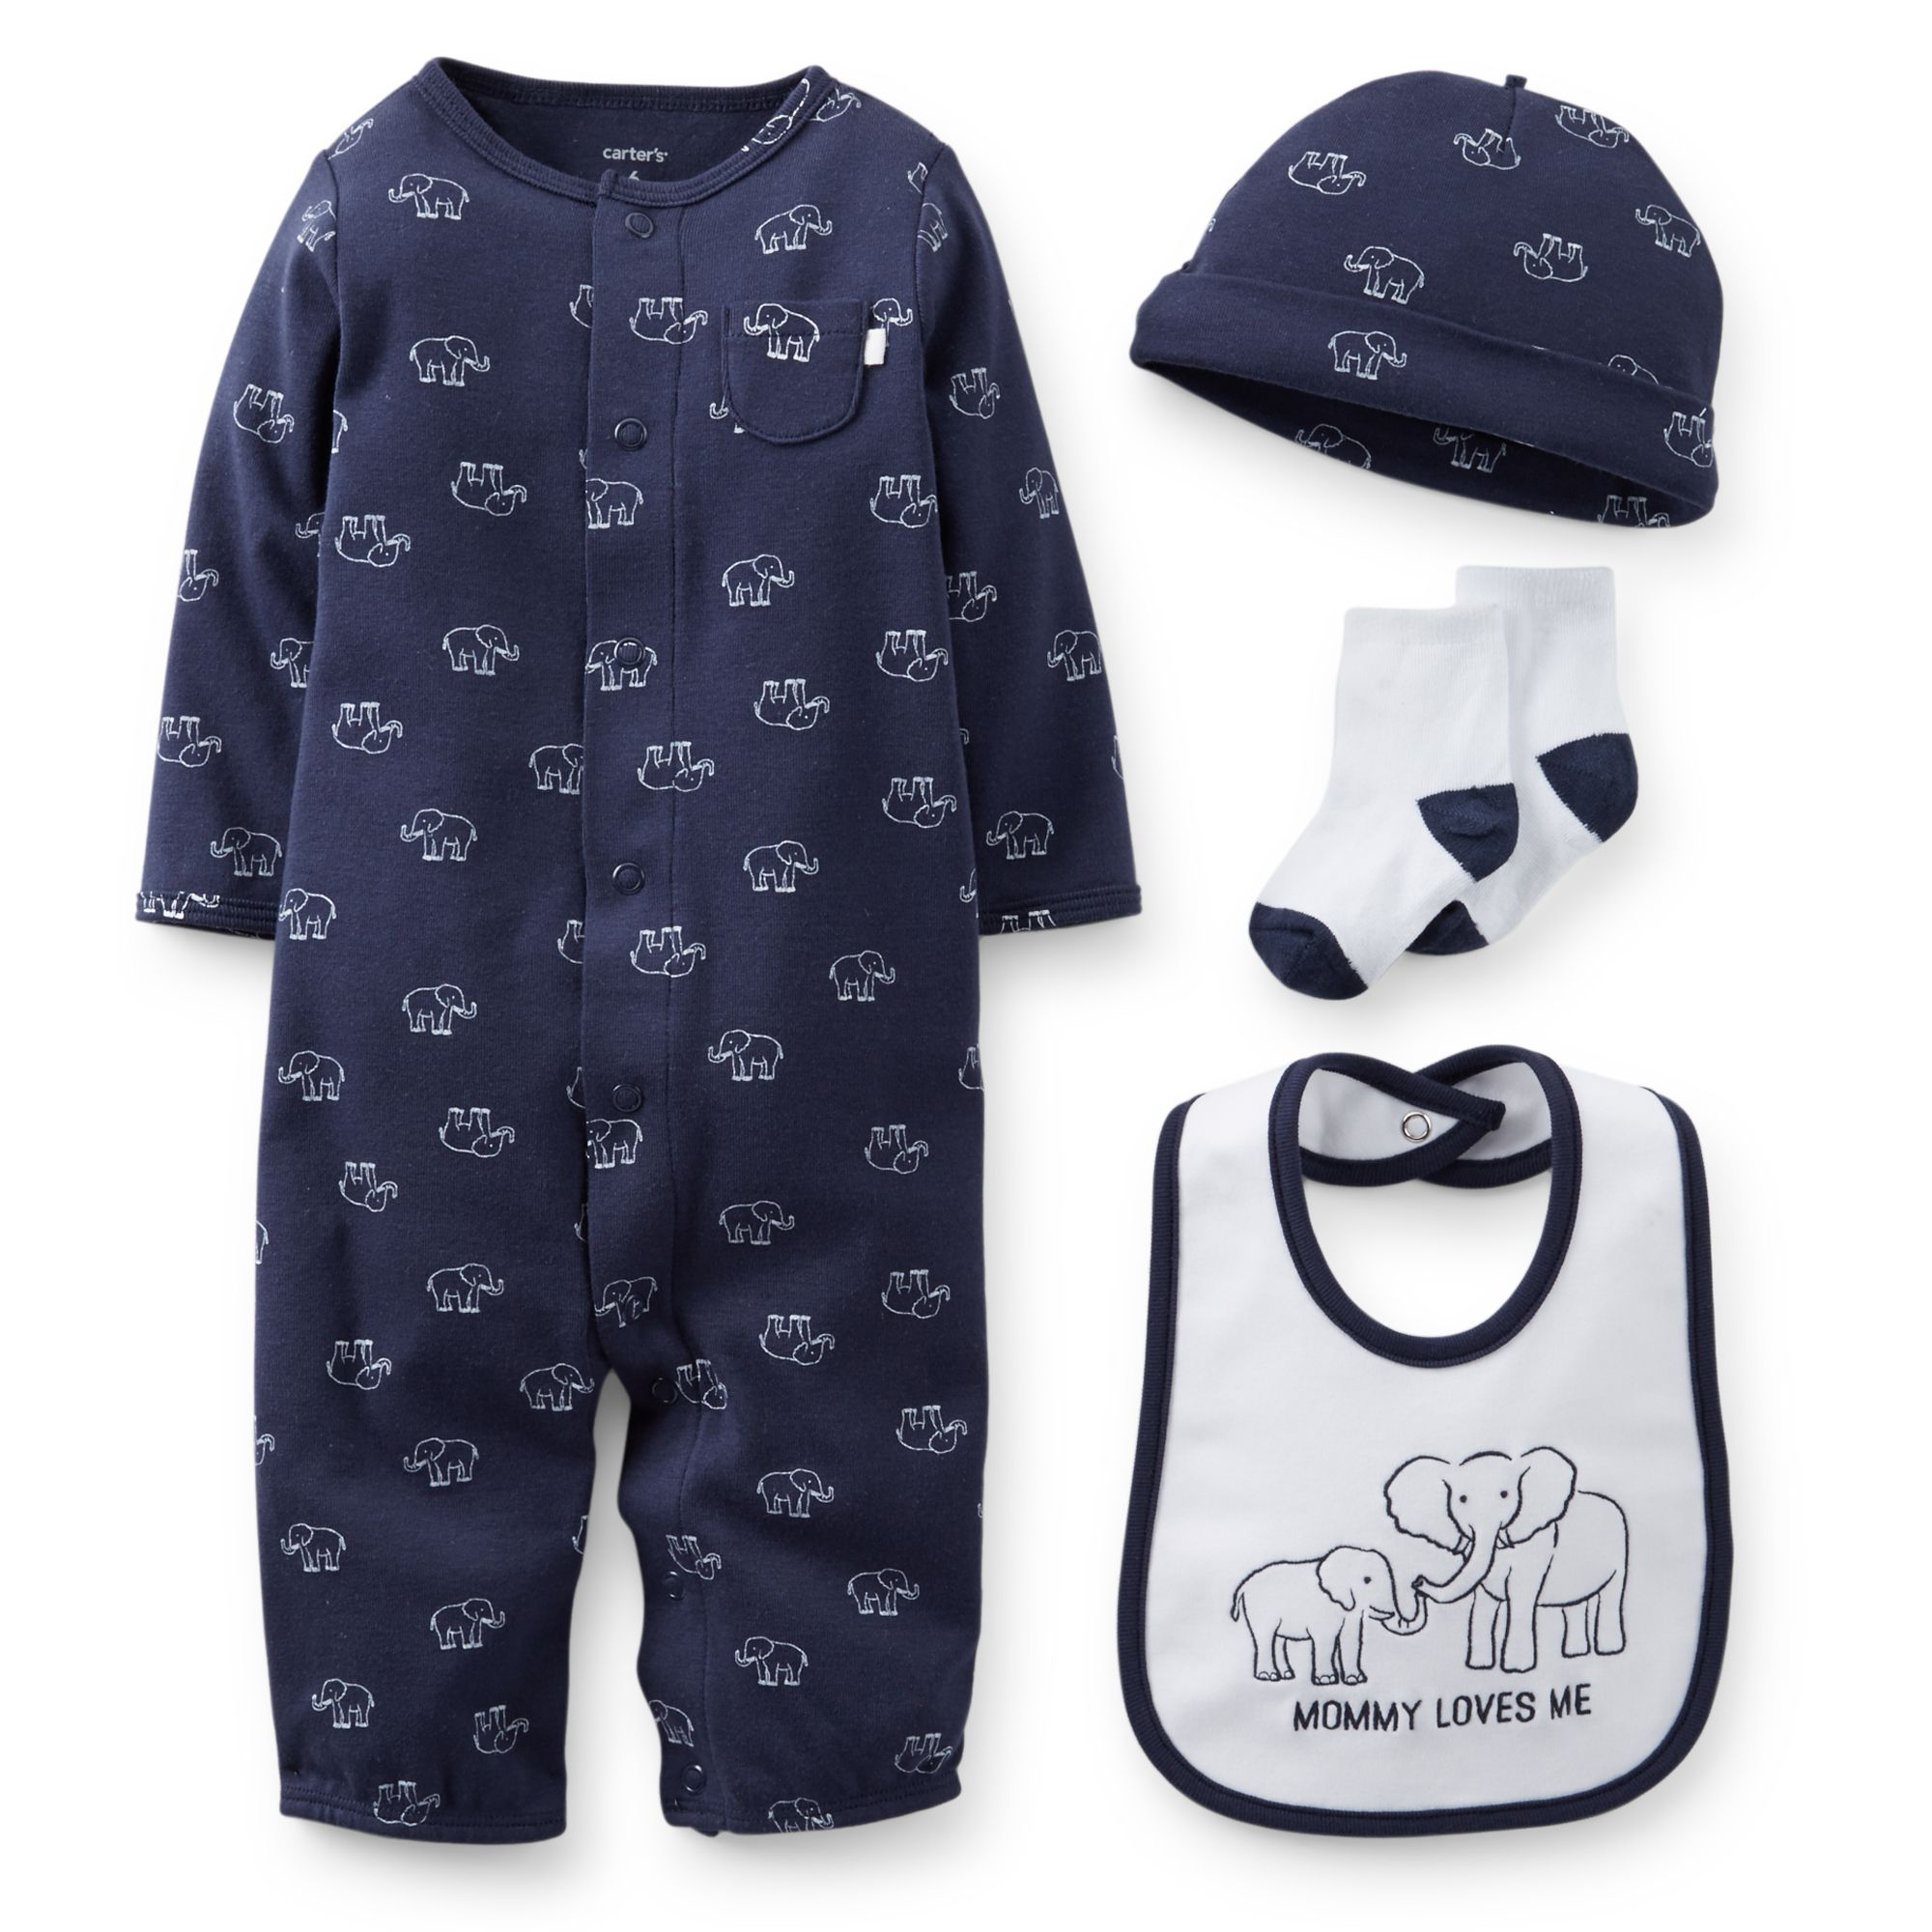 New Carters Baby Clothing Outfit Boys 4pc Layette Set Navy Blue